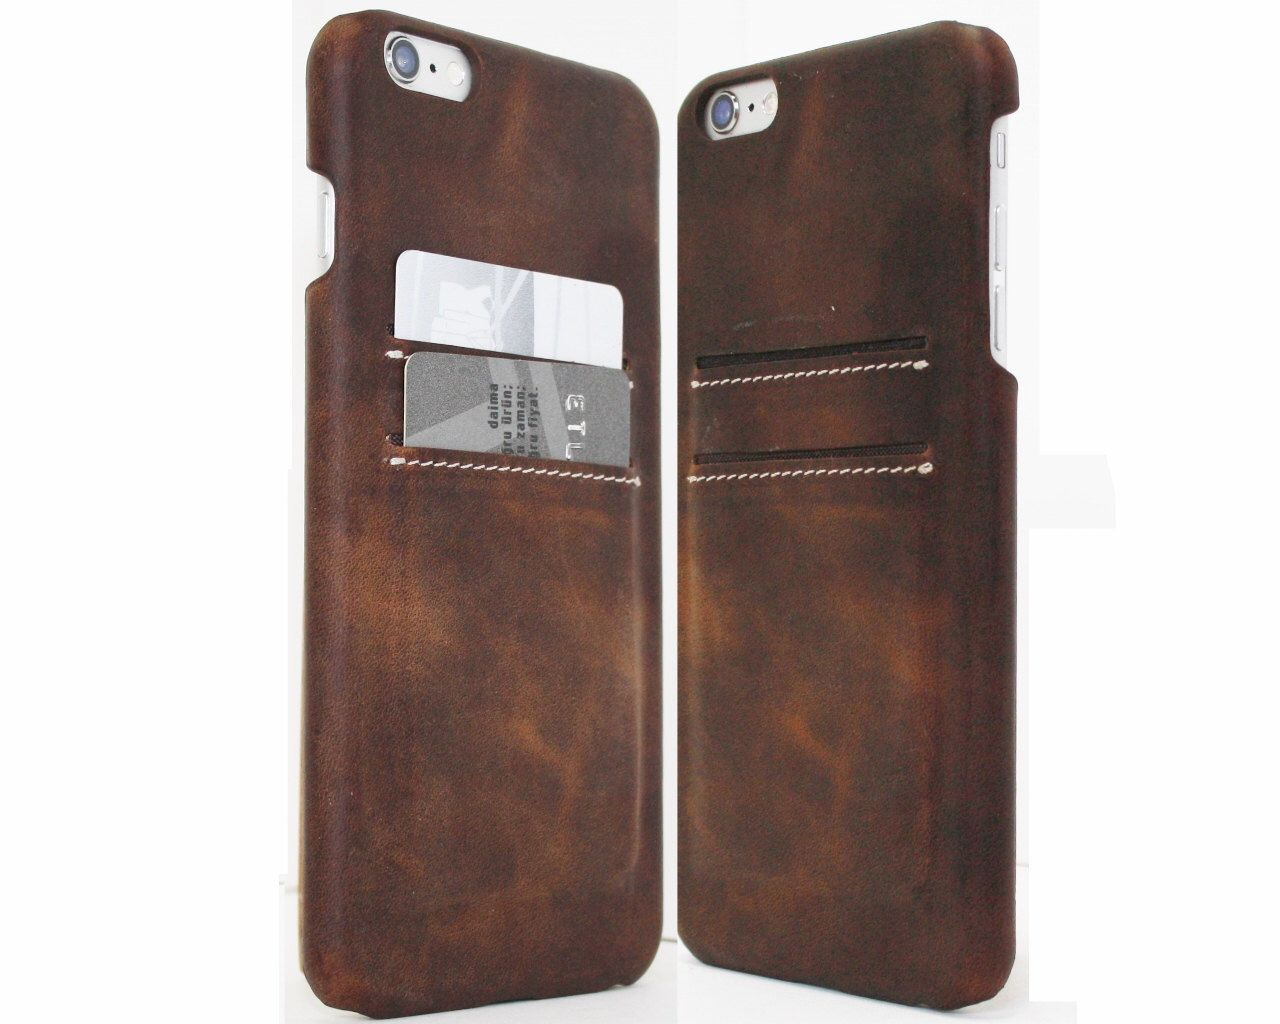 reputable site 9ec95 6eb3f Pin by pedro avia on Cool Gear | Leather phone case, Iphone 6 plus ...